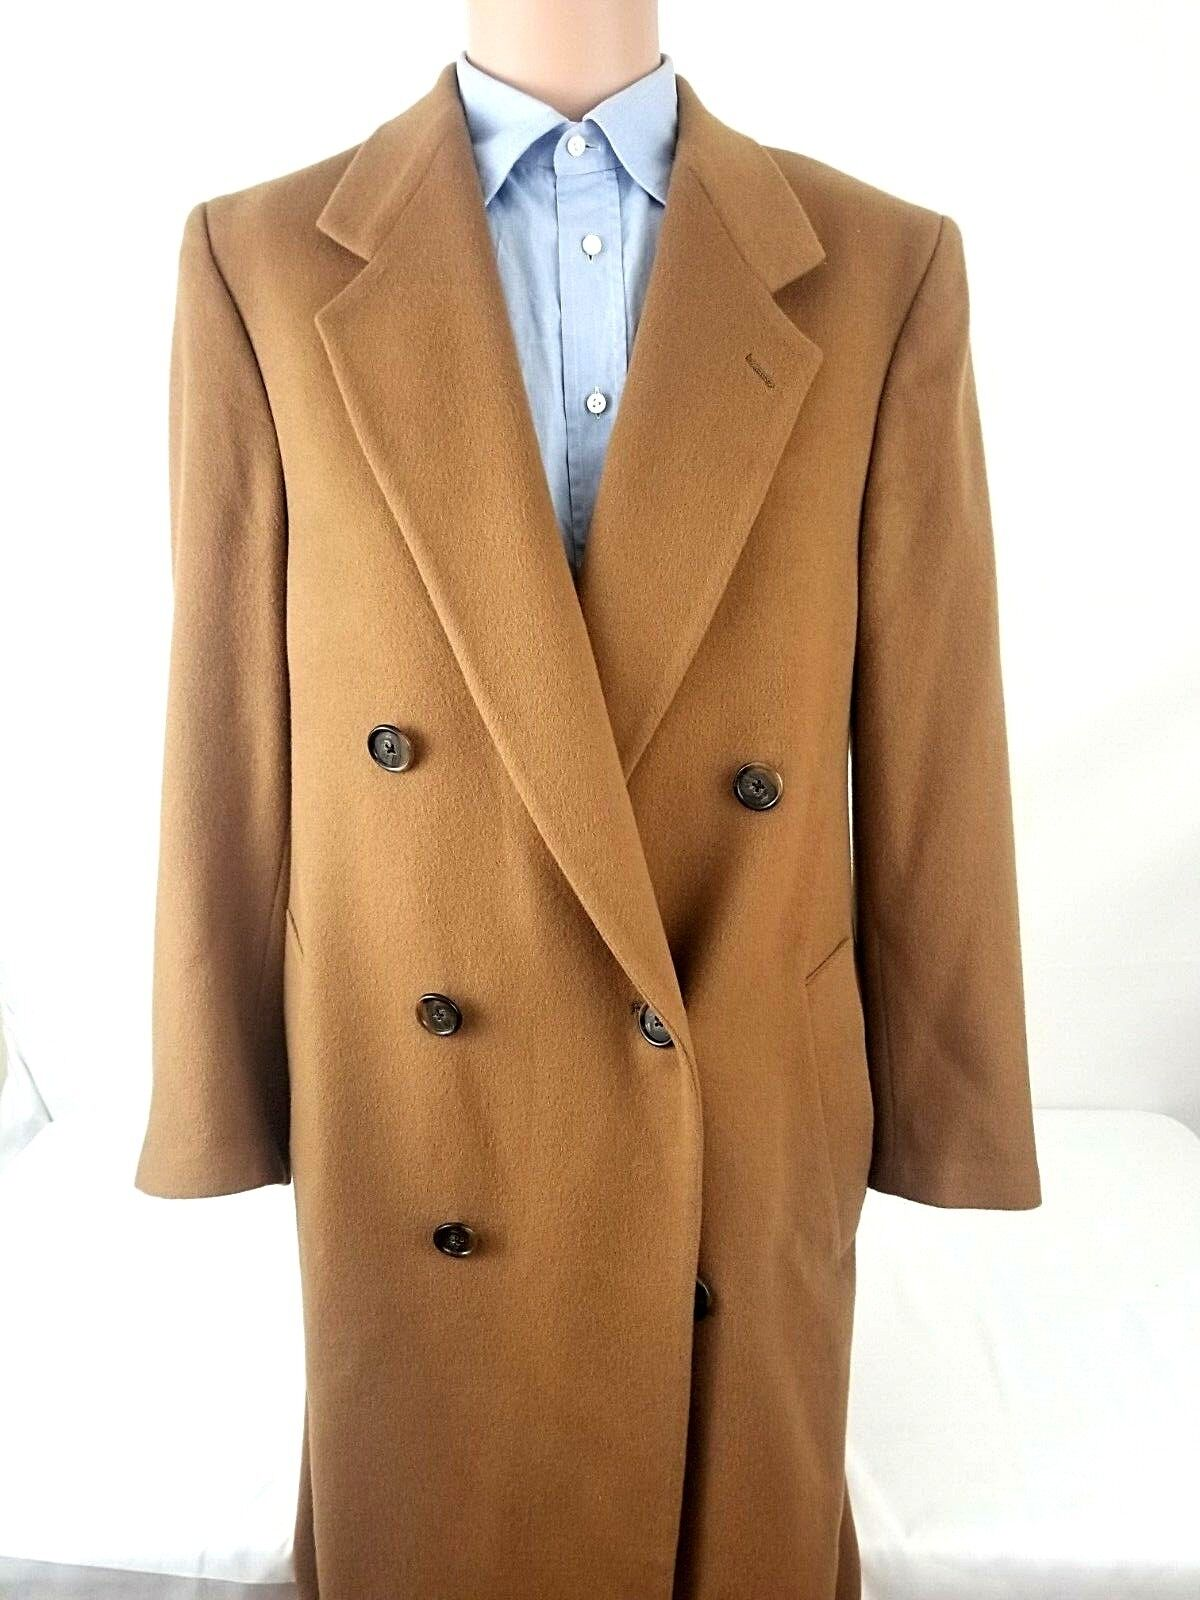 Saks Fifth Avenue Mens Overcoat Lgold Piana 100% Lamnswool Brown Topcoat 40R